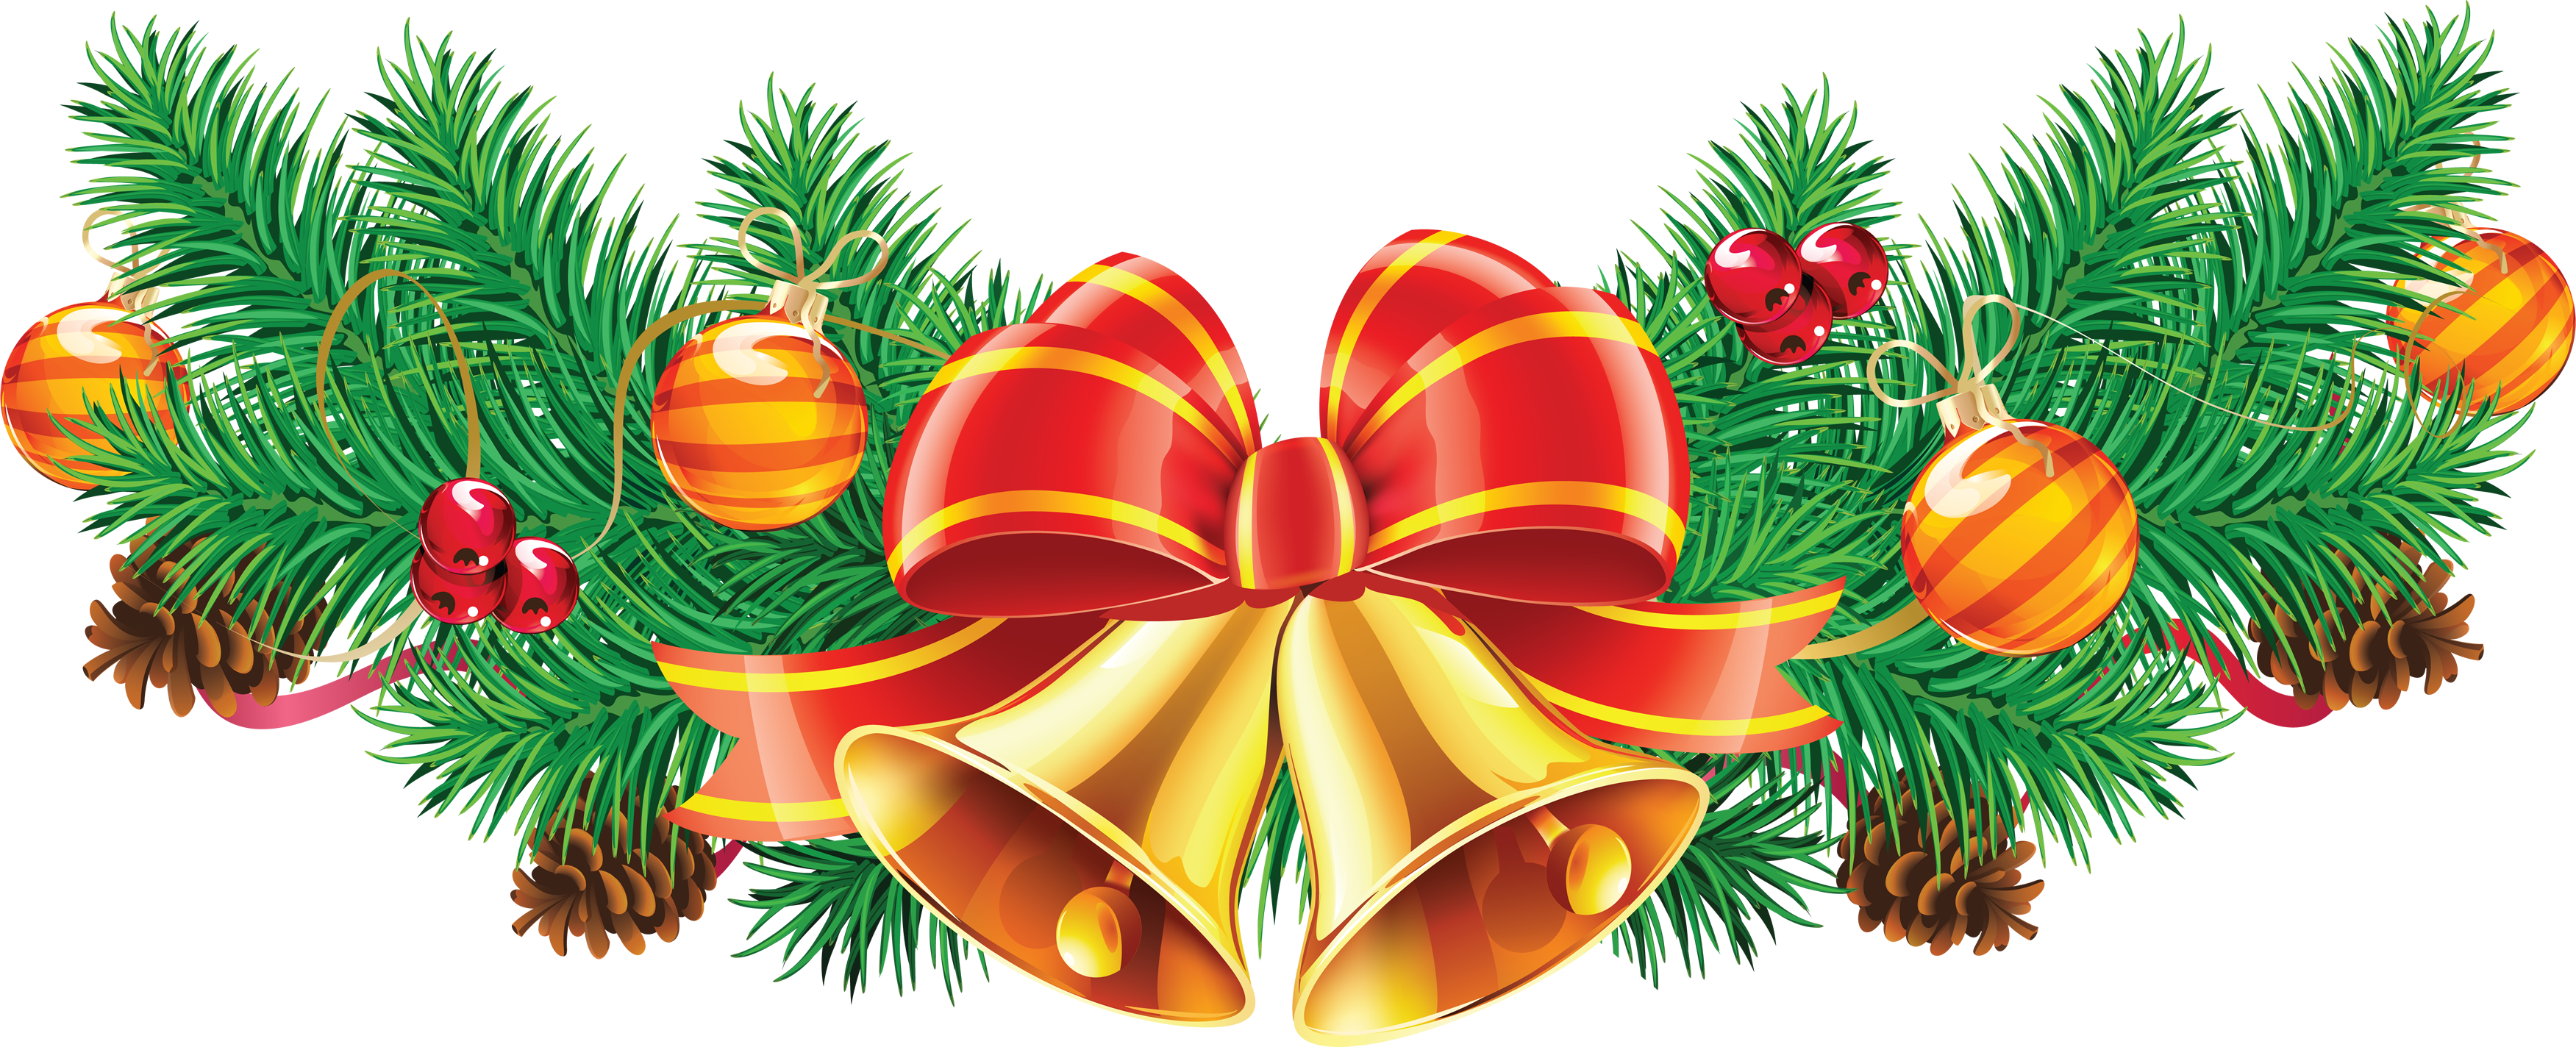 High Resolution Christmas Png Clipart image #35314